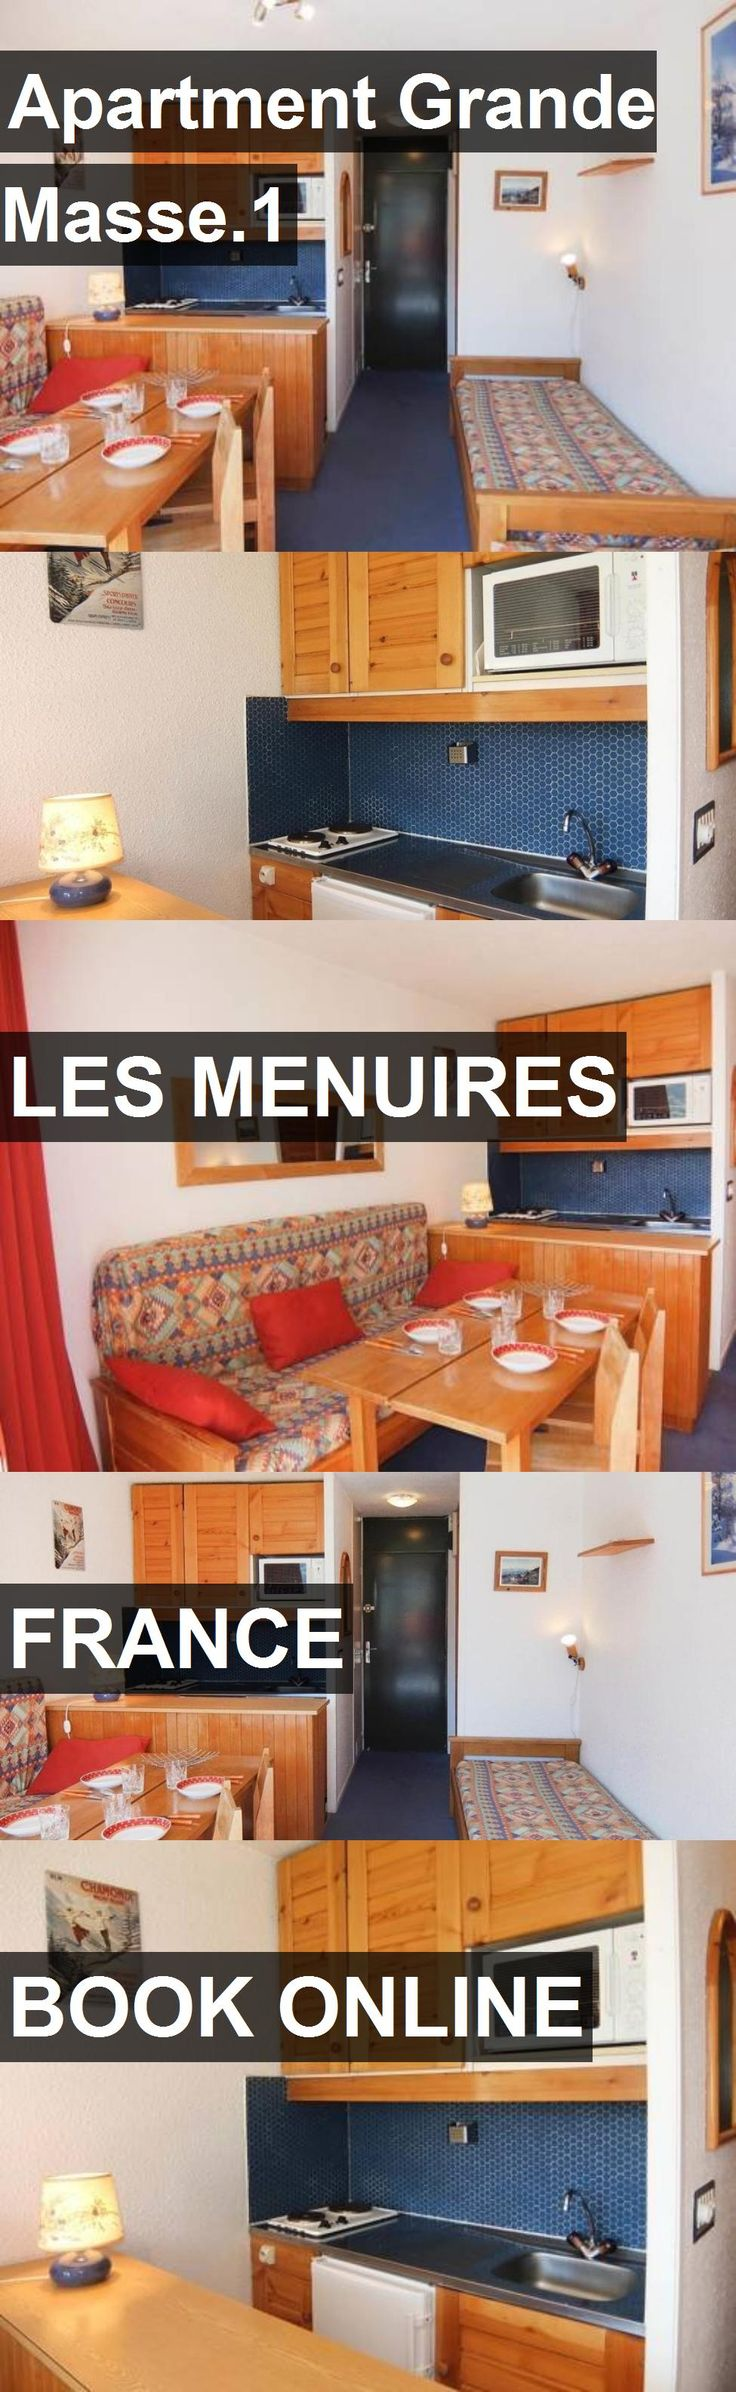 Apartment Grande Masse.1 in Les Menuires, France. For more information, photos, reviews and best prices please follow the link. #France #LesMenuires #travel #vacation #apartment